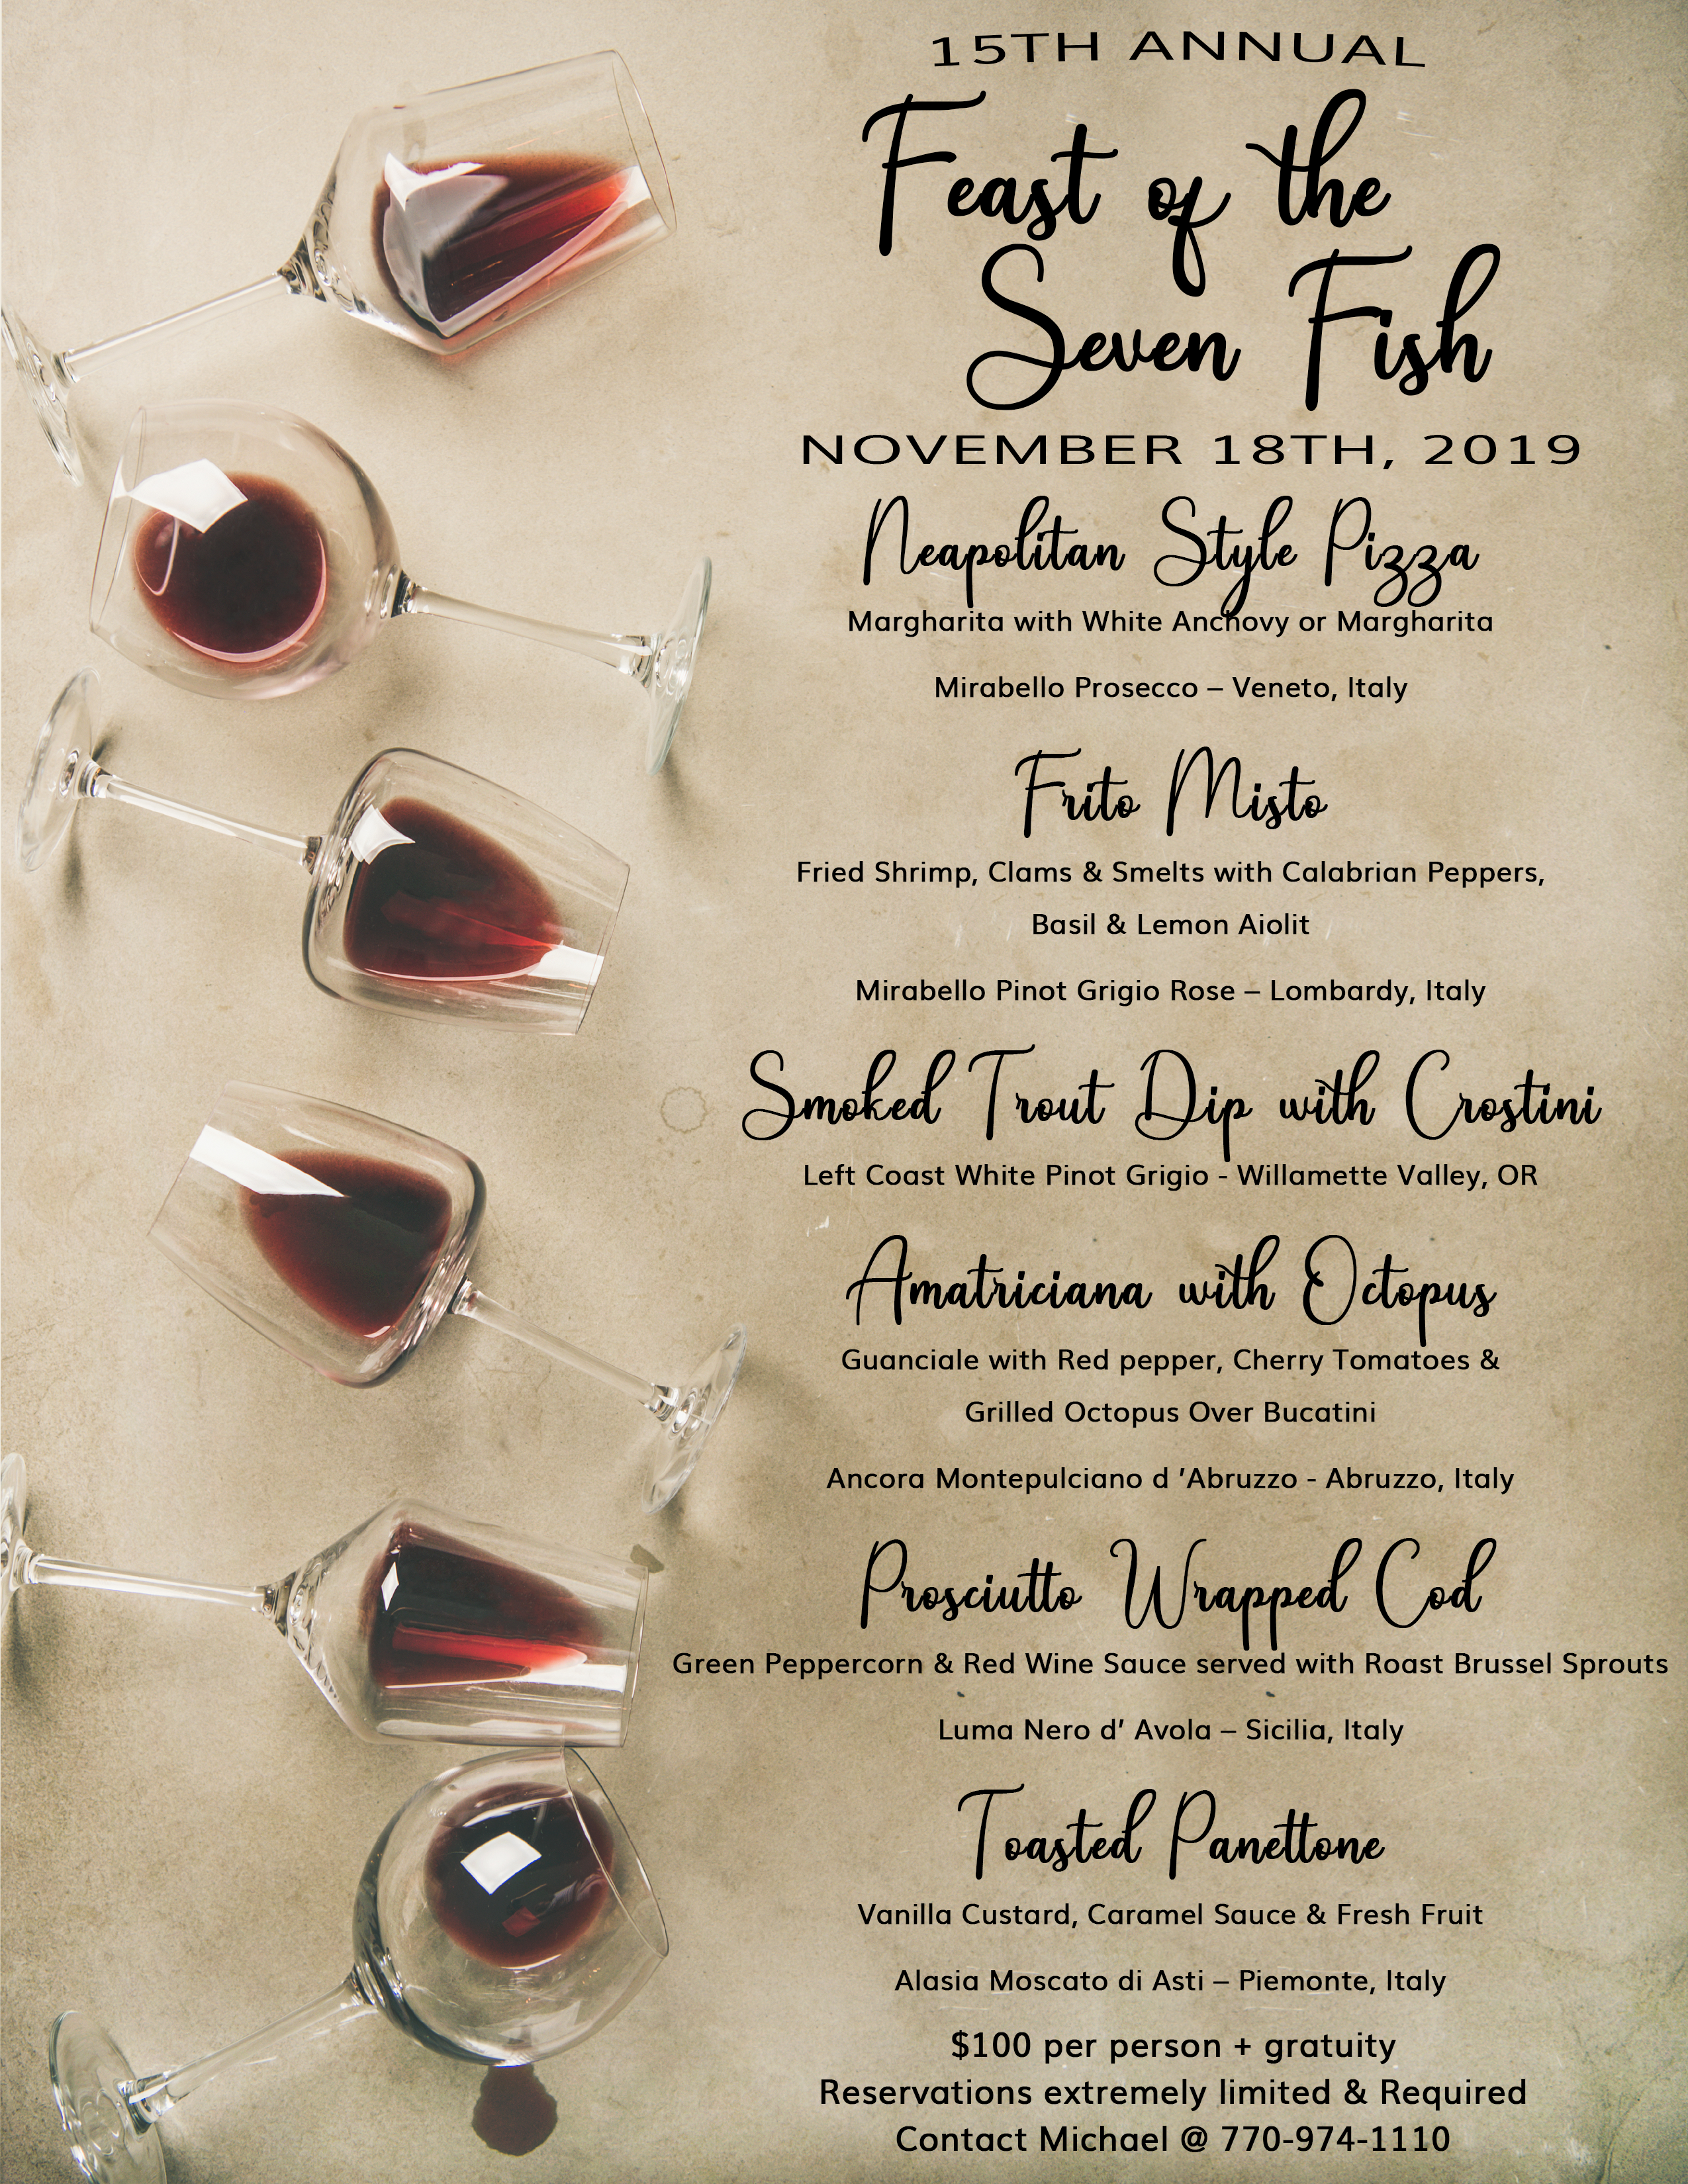 15th Annual Feast of the Seven Fish November 18th, 2019  Neapolitan Style Pizza Margharita w/White Anchovy or Margharita Mirabello Prosecco – Veneto, Italy  Frito Misto Fried Shrimp, Clams & Smelts w/Calabrian Peppers, Basil & Lemon Aioli Mirabello Pinot Grigio Rose – Lombardy, Italy  Smoked Trout Dip w/Crostini Left Coast White Pinot Grigio - Willamette Valley, OR  Amatriciana w/ Octopus Guanciale w/Red pepper, Cherry Tomatoes & Grilled Octopus Over Bucatini Ancora Montepulciano d 'Abruzzo - Abruzzo, Italy  Prosciutto Wrapped Cod Green Peppercorn & Red Wine Sauce S/w Roast Brussel Sprouts Luma Nero d' Avola – Sicilia, Italy  Toasted Panettone Vanilla Custard, Caramel Sauce & Fresh Fruit Alasia Moscato di Asti – Piemonte, Italy  $100 per person + gratuity Reservations extremely limited & Required Contact Michael @ 770-974-1110